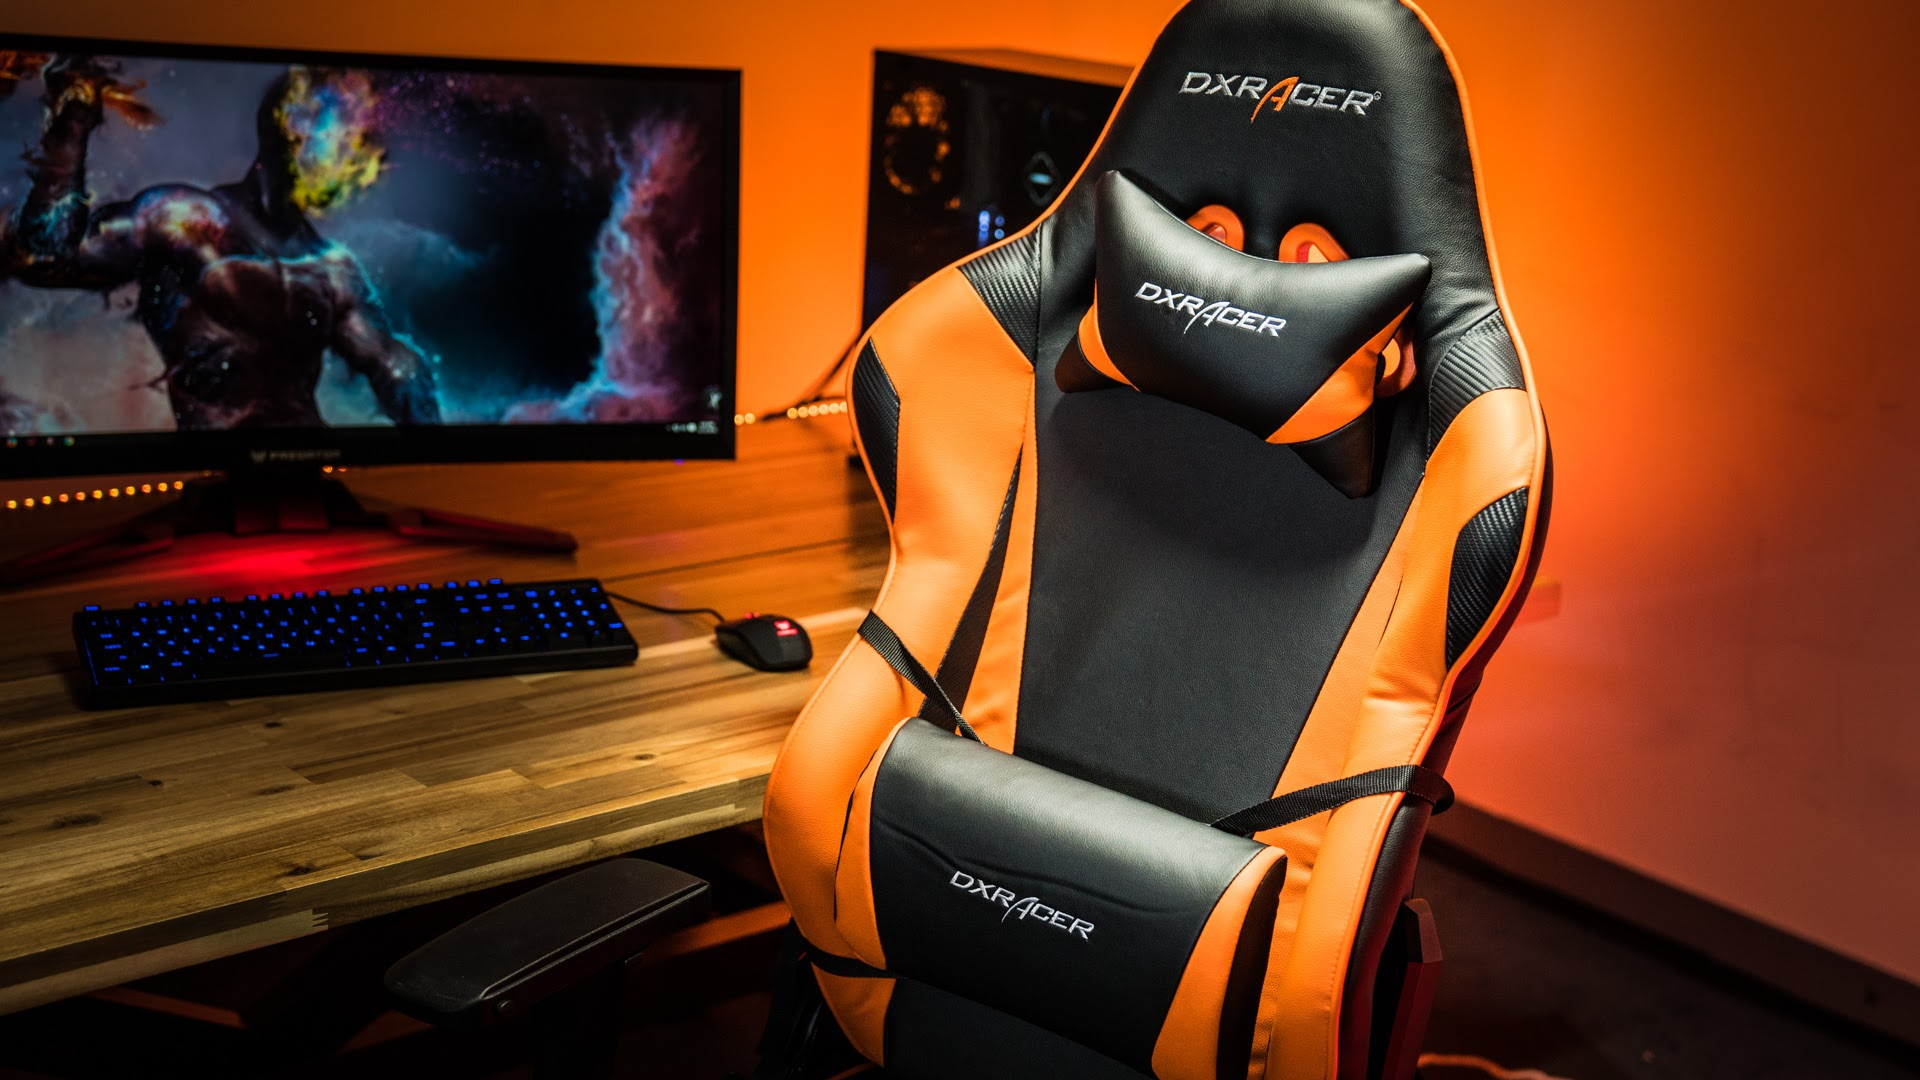 Dxracer Sessel ᐅ Die 5 Besten Gaming Sessel 2018 Gaming Pc Test